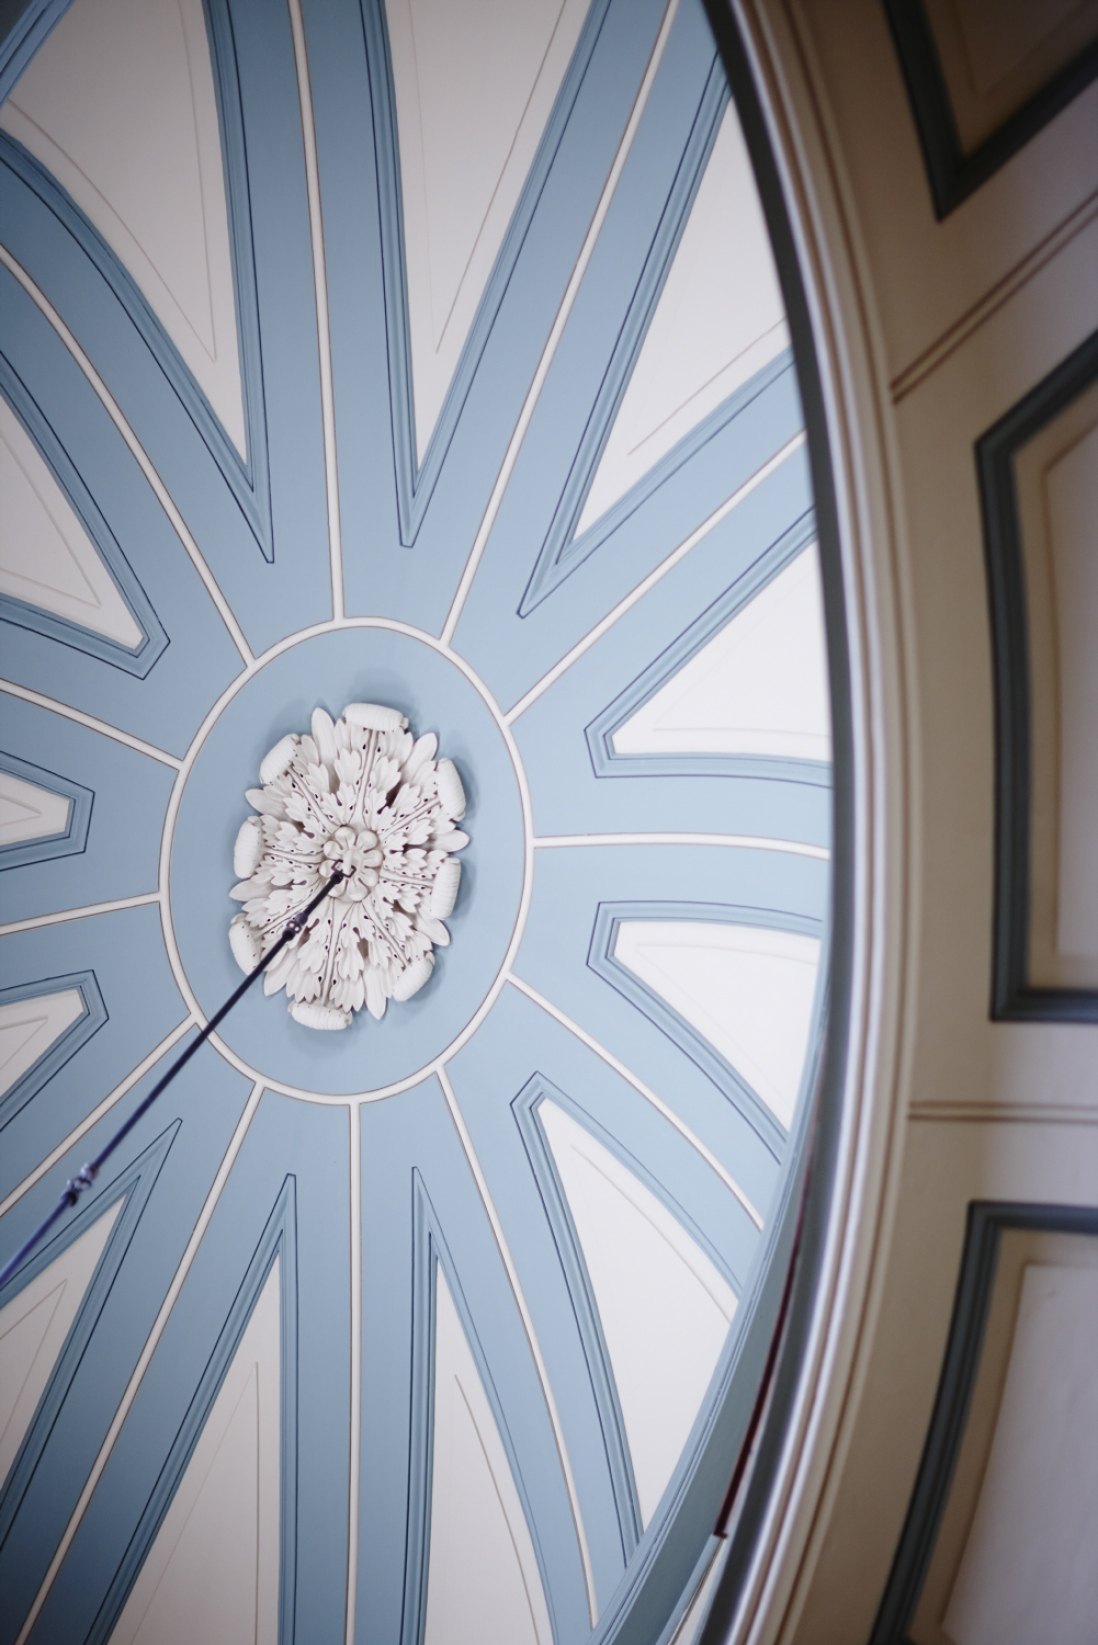 Looking up towards blue and white patterned dome with ceiling rose in centre.